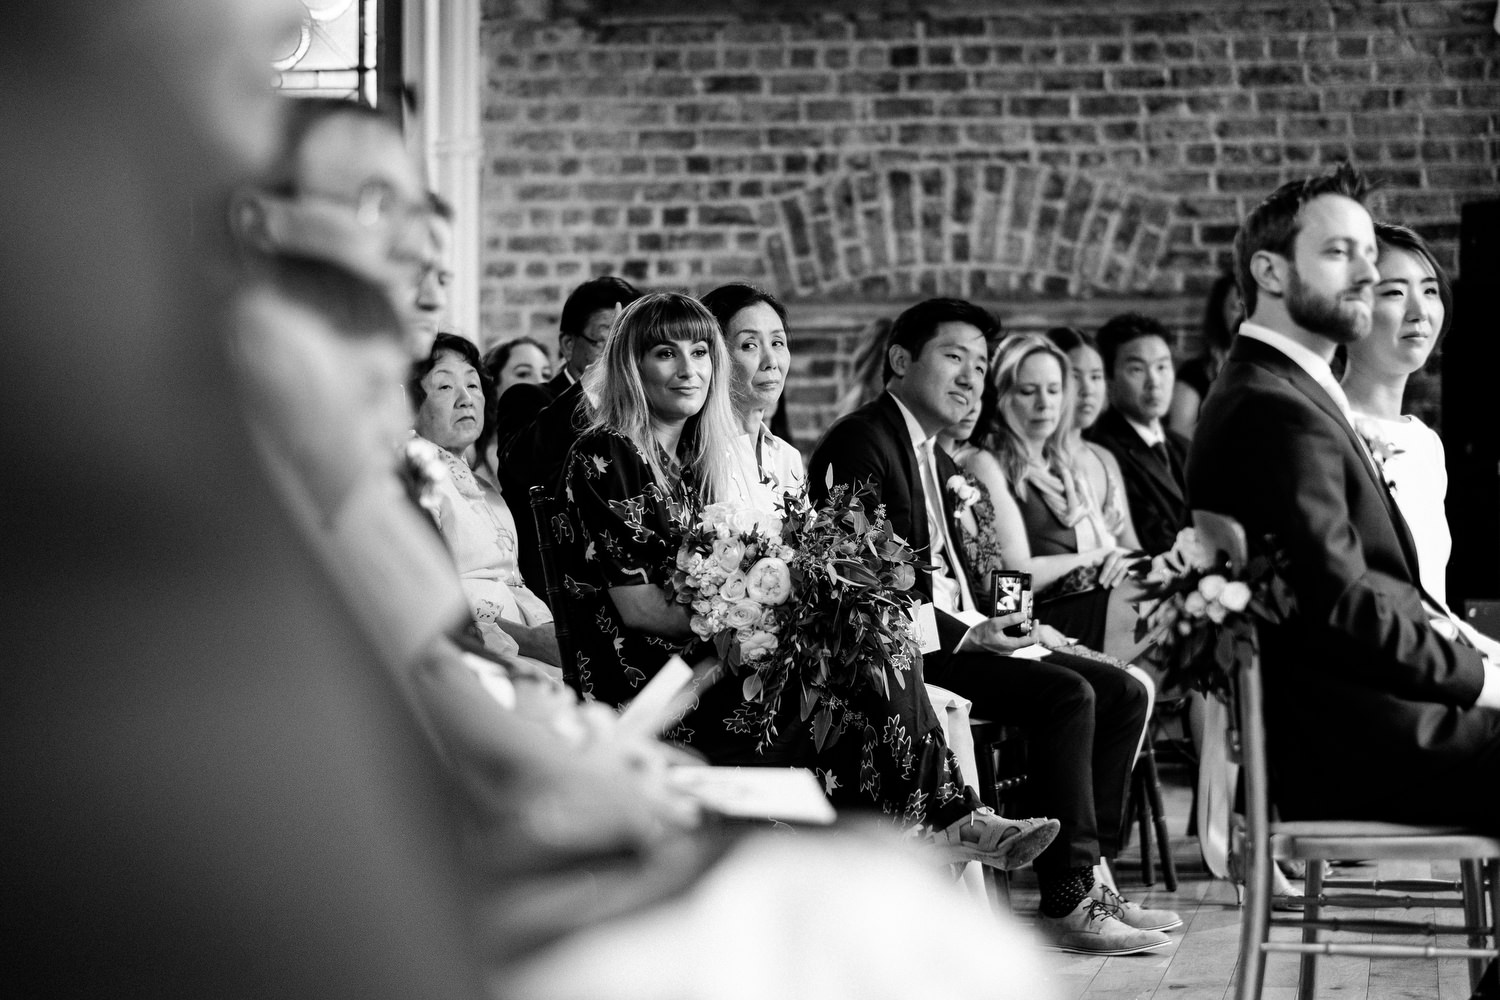 dmp0233_dublin_alley_photography_david_mcclelland_ceremony_humanist_documentary_theatre_smock_wedding_photographer